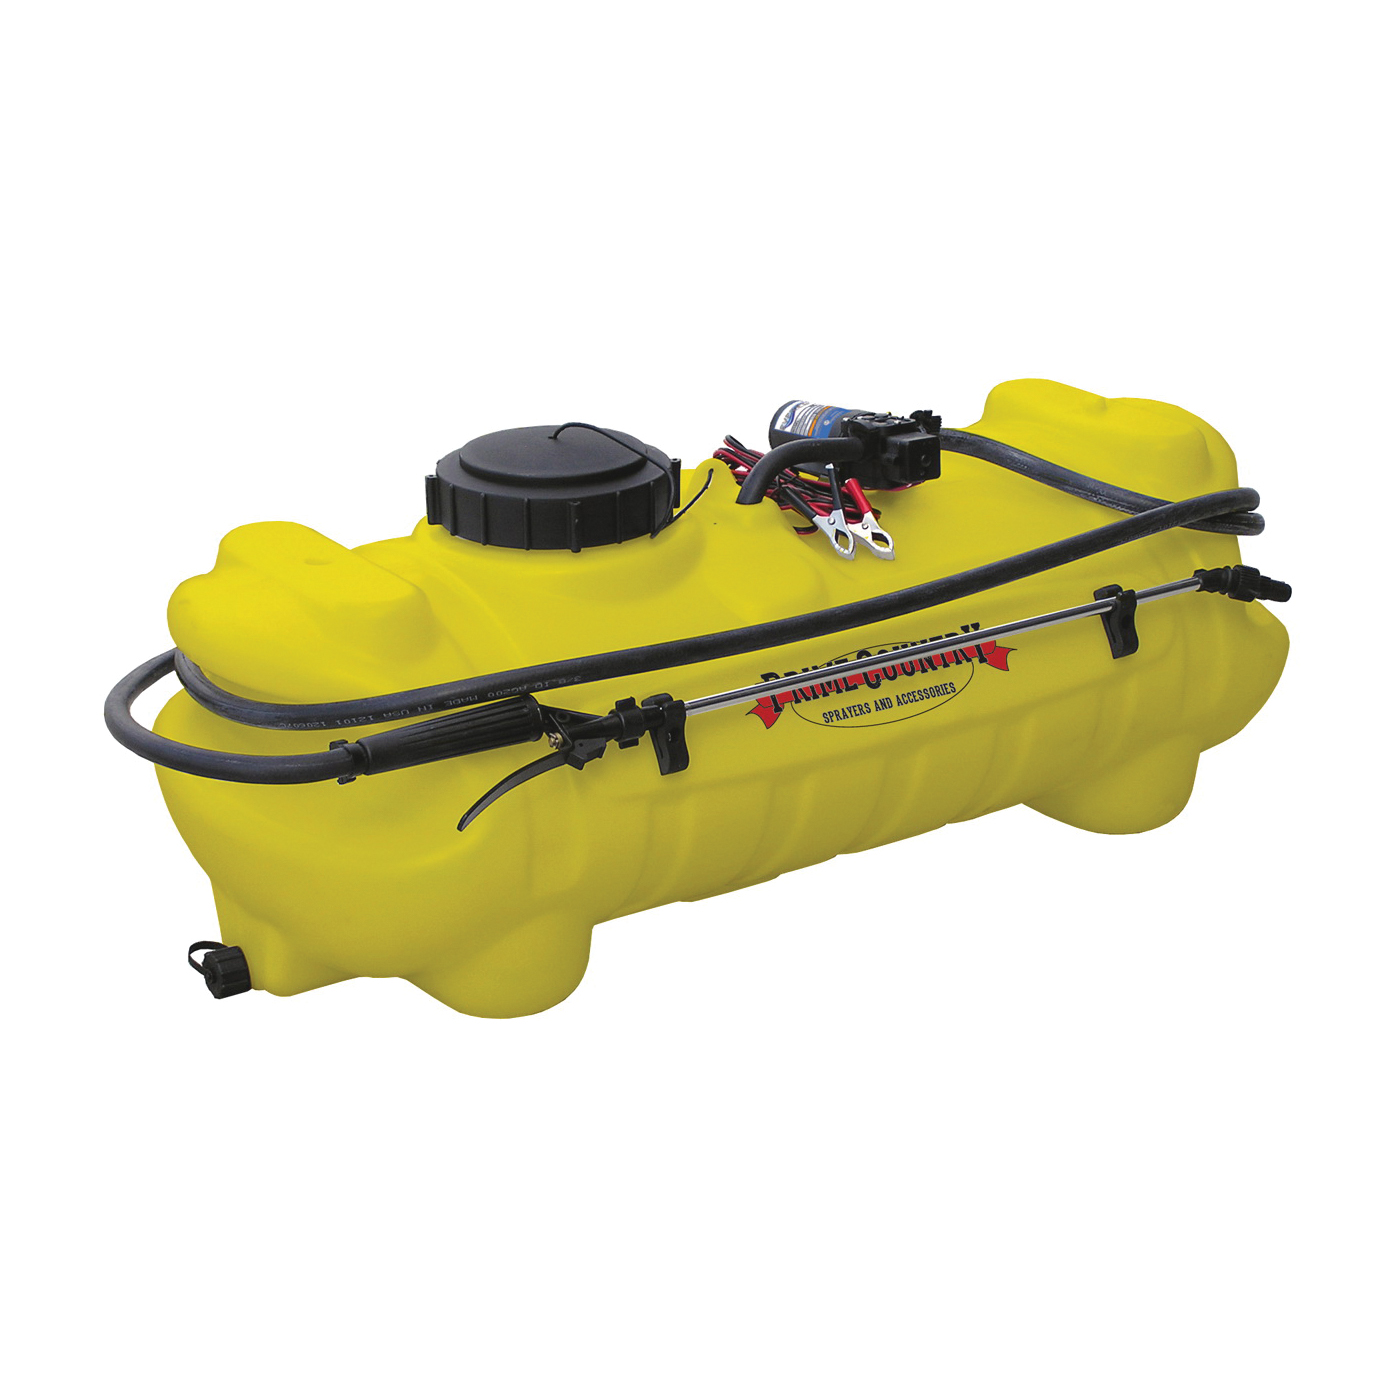 Picture of MASTER MFG SSN-01-015A-PC Spot Sprayer, 15 gal Capacity